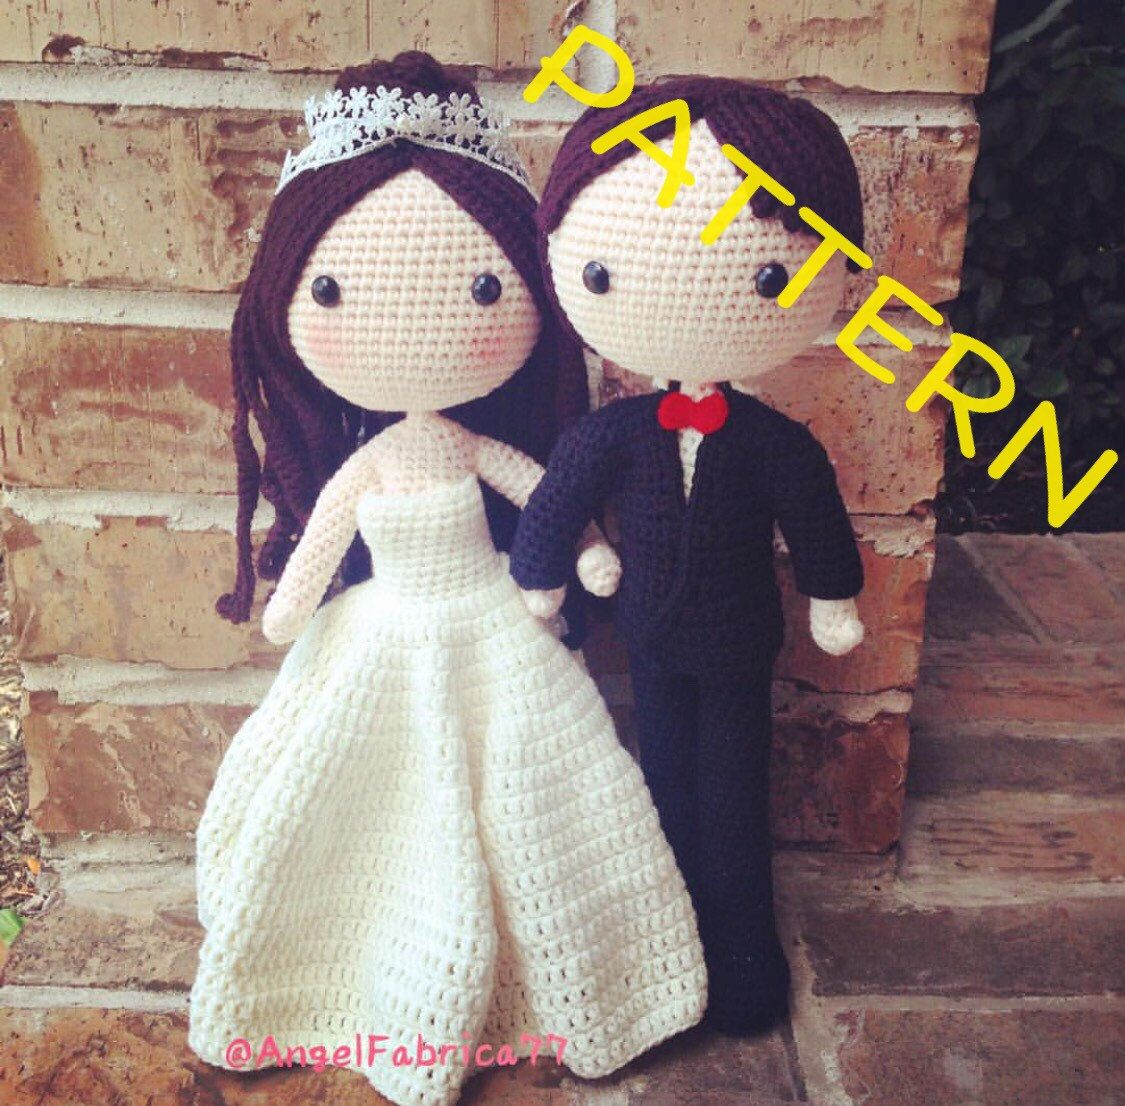 Wedding Doll Kit DIY Wedding Decor Amigurumi Wedding Kit Bride and ... | 1106x1125